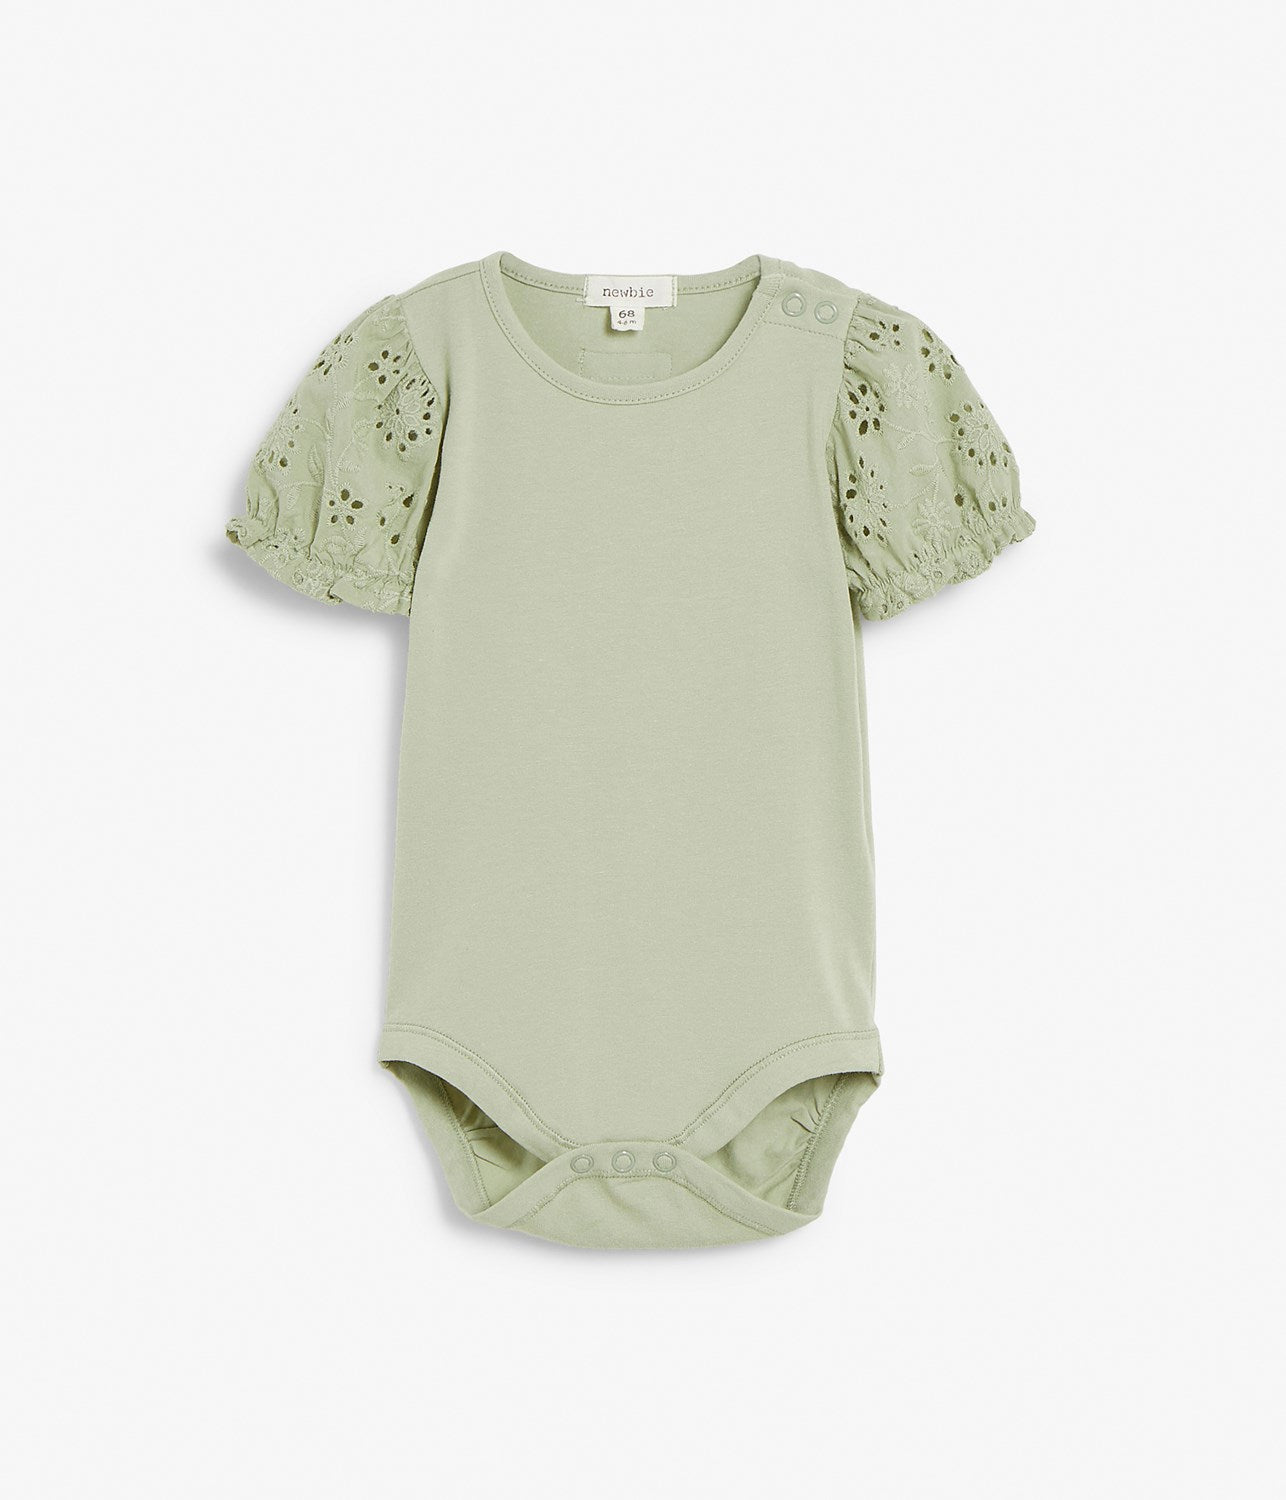 Baby green body with puffed sleeves